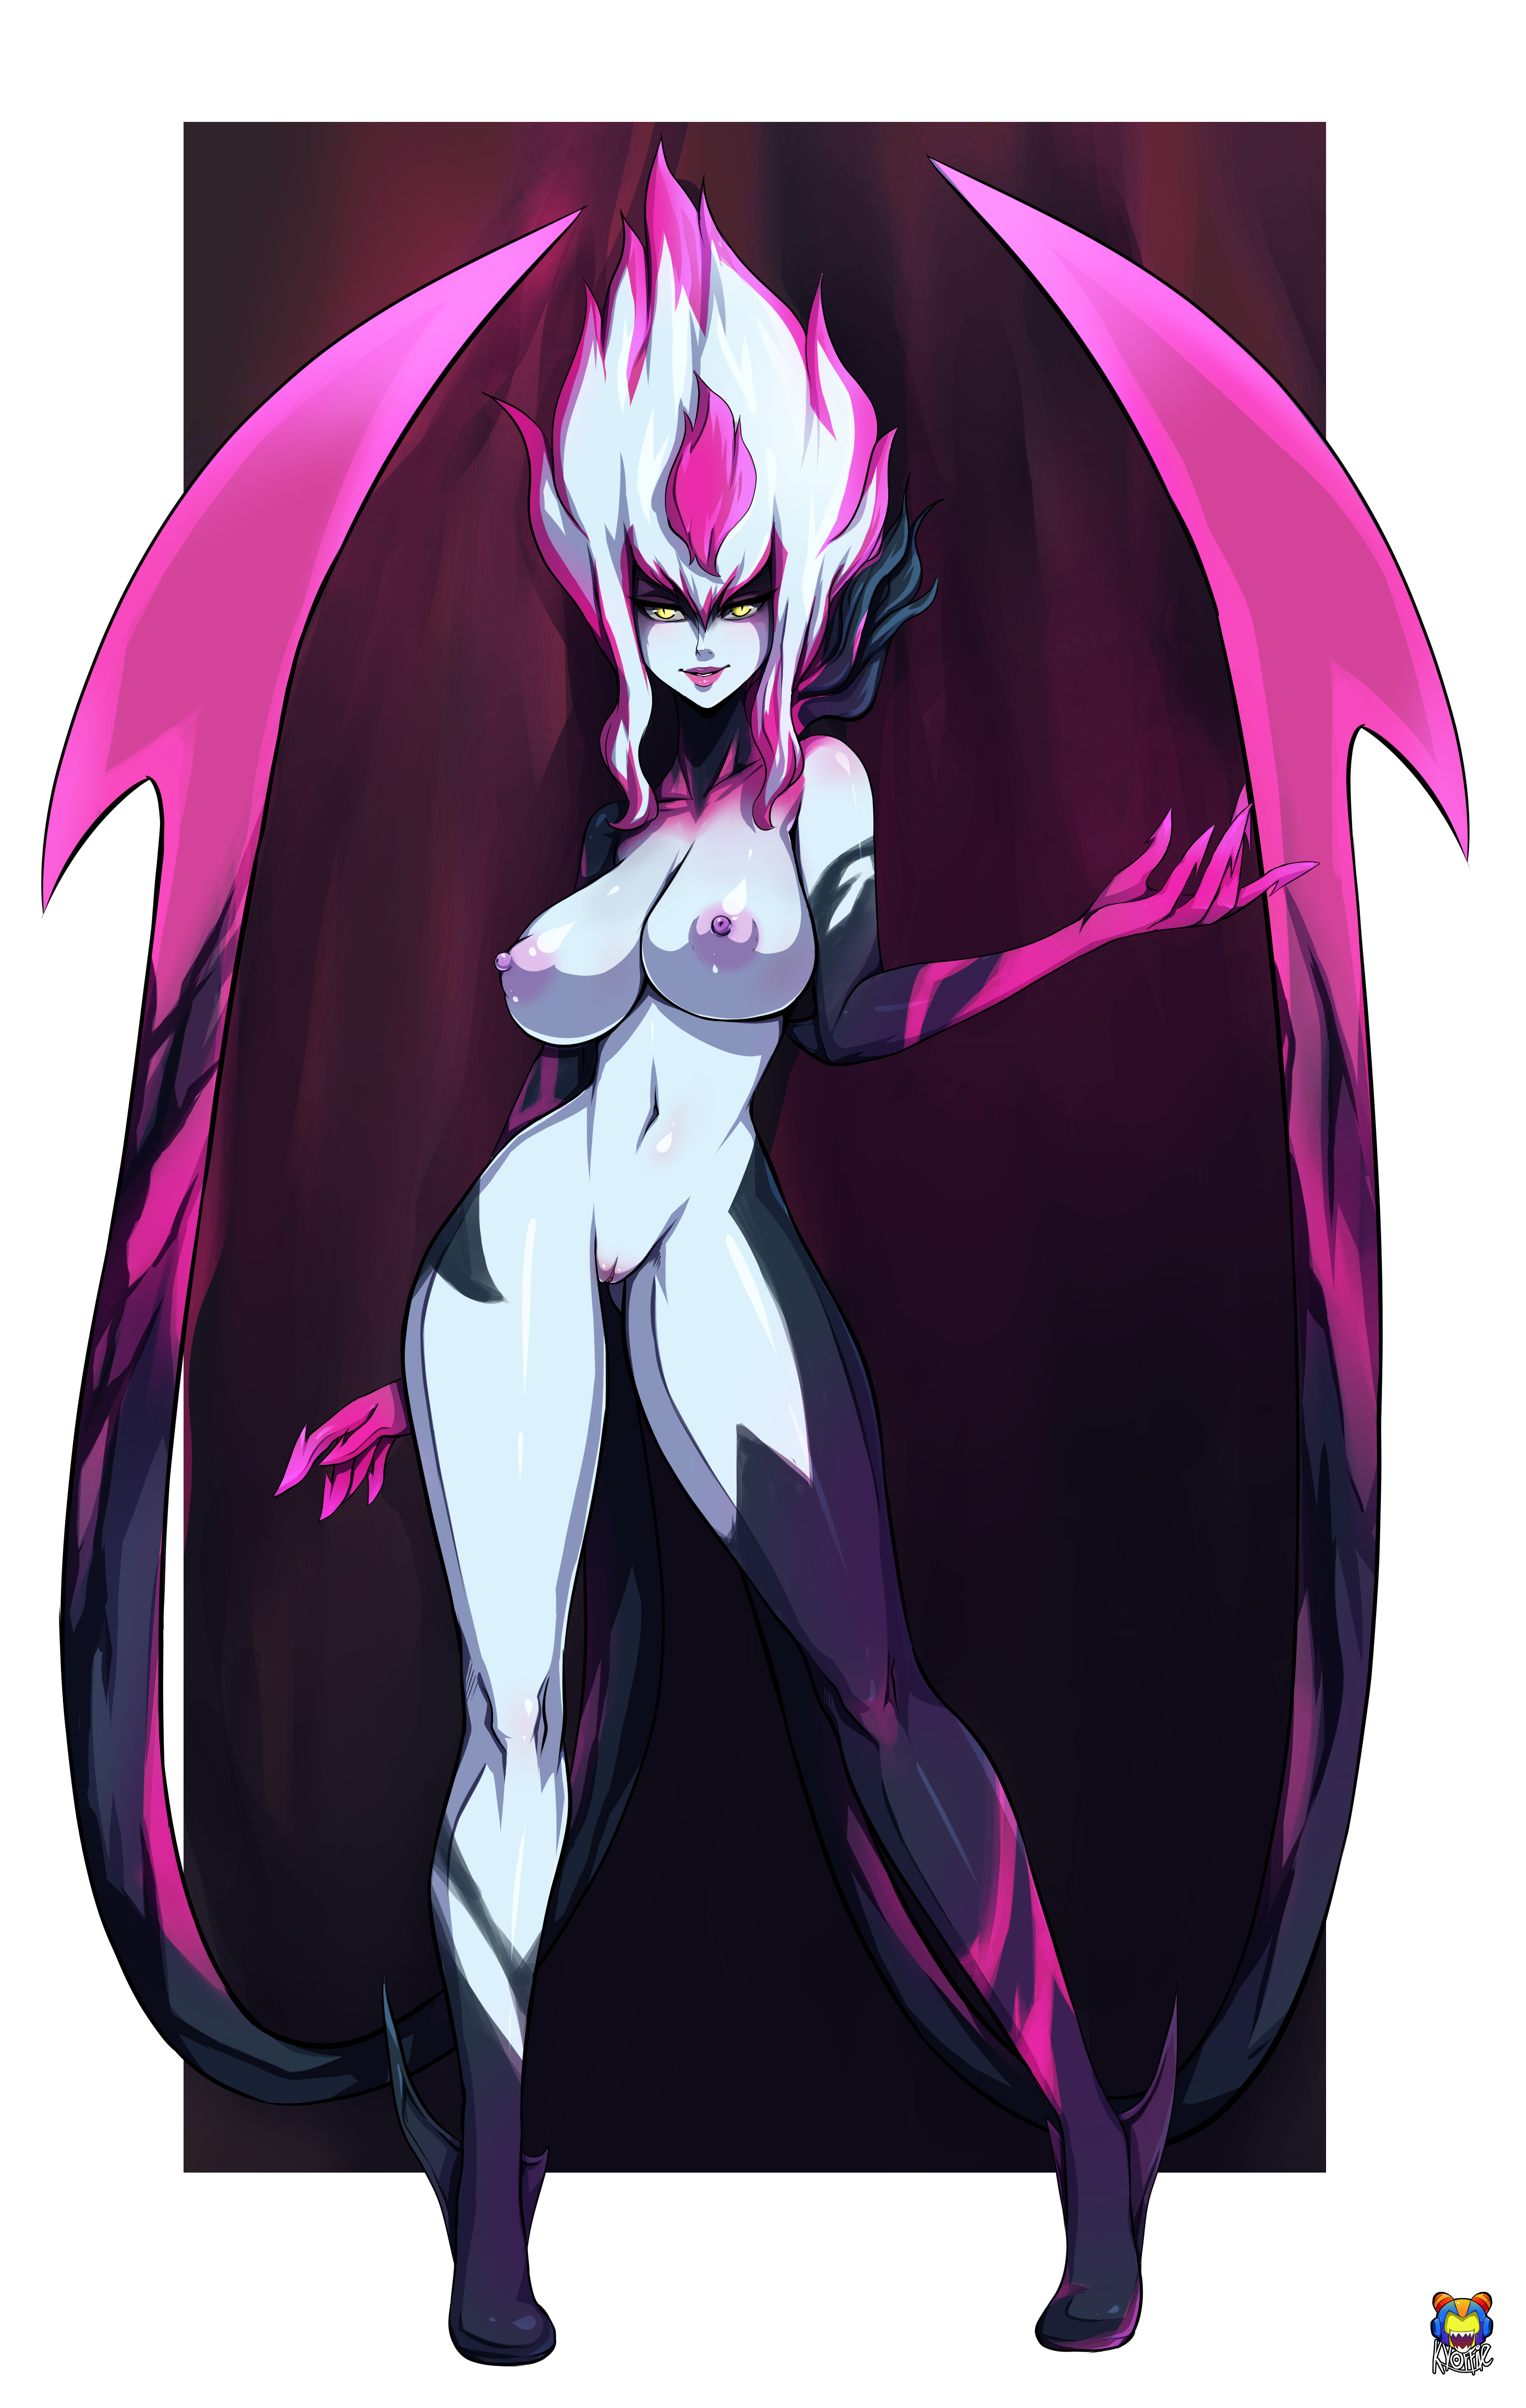 3247944 - Evelynn Kyoffie League_of_Legends